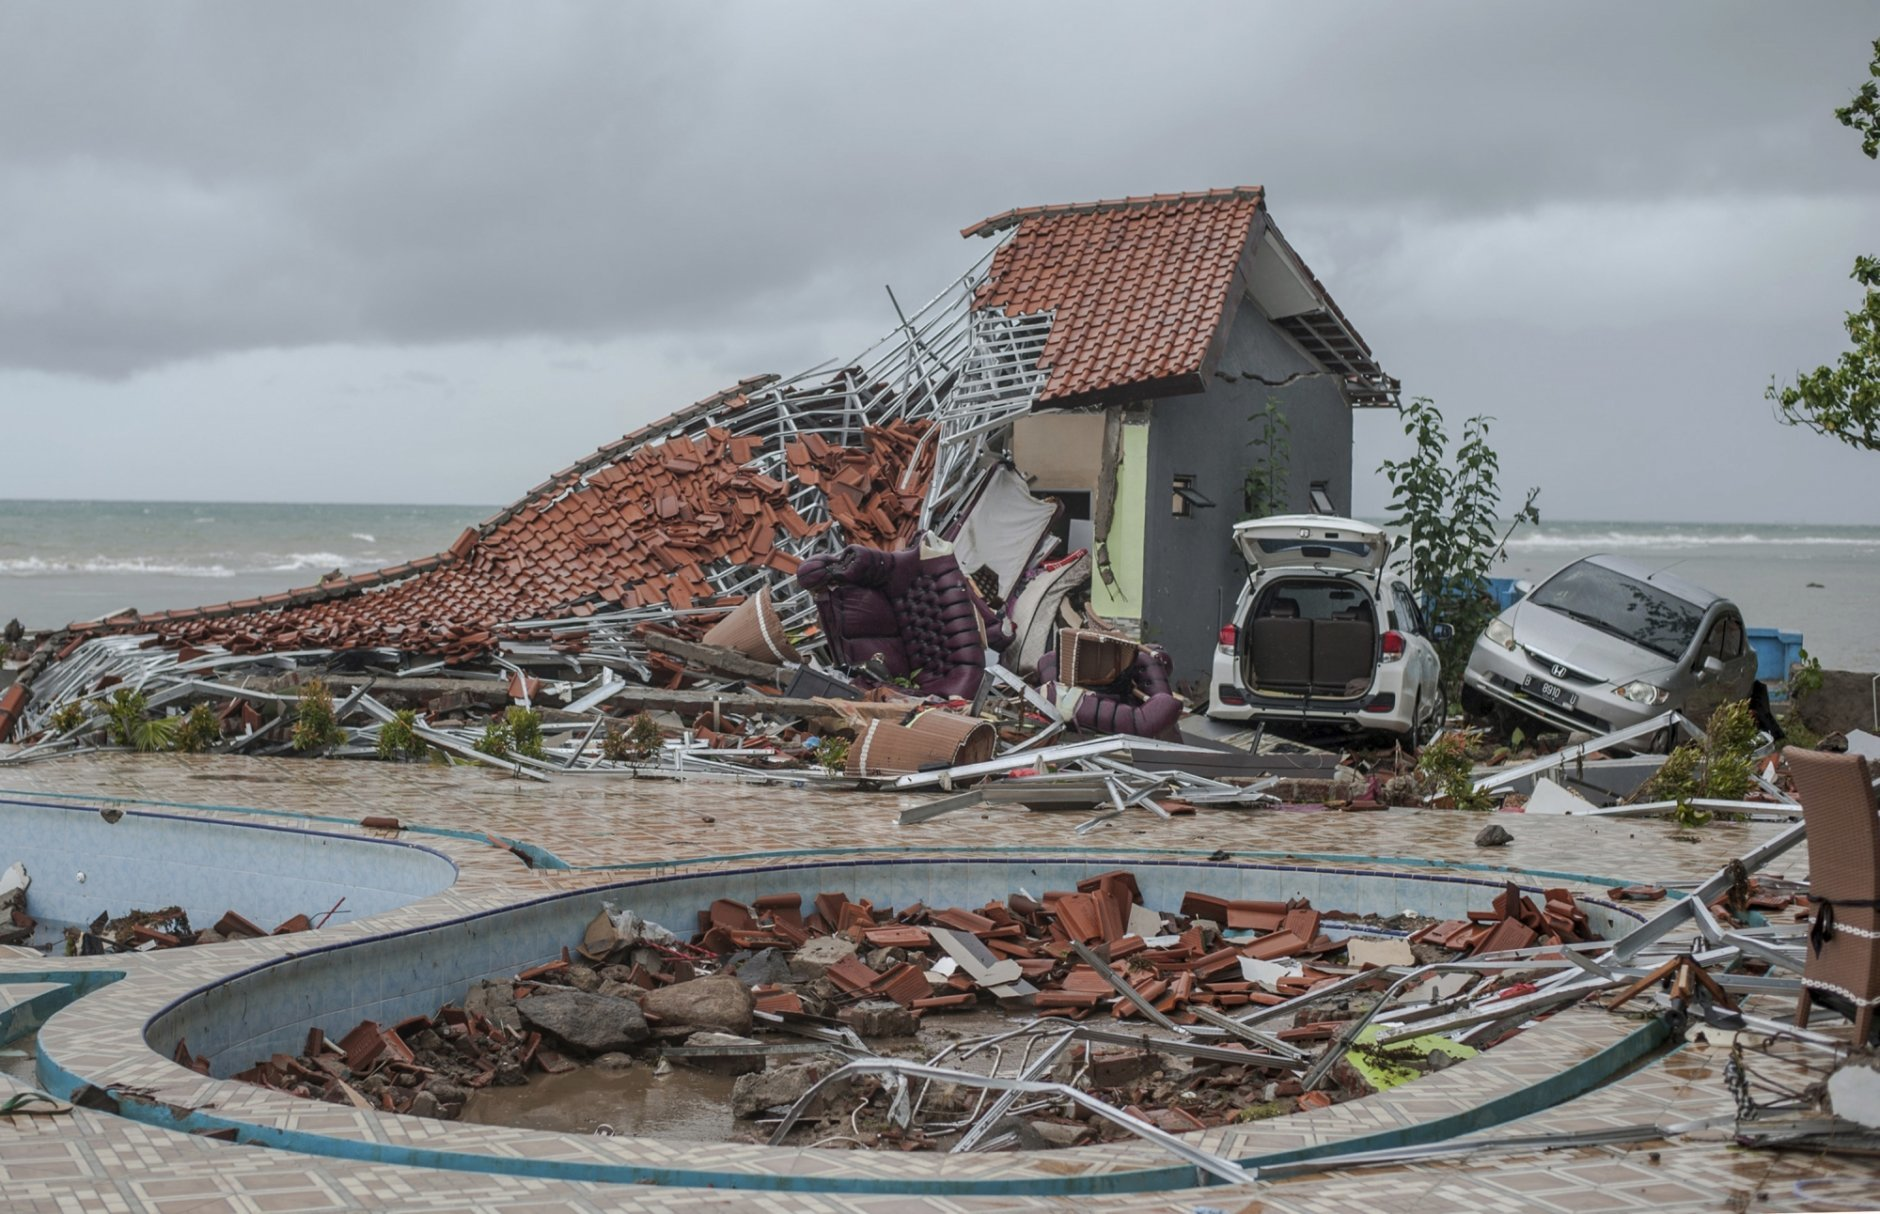 In this Sunday, Dec. 23, 2018, photo, debris littered a property badly damaged by a tsunami in Carita, Indonesia. The tsunami that hit the coasts of Indonesian islands along the Sunda Strait was not big but it was destructive. The waves smashed onto beaches in the darkness Saturday night without warning, ripping houses and hotels from their foundations in seconds and sweeping terrified concertgoers into the sea. (AP Photo/Fauzy Chaniago)